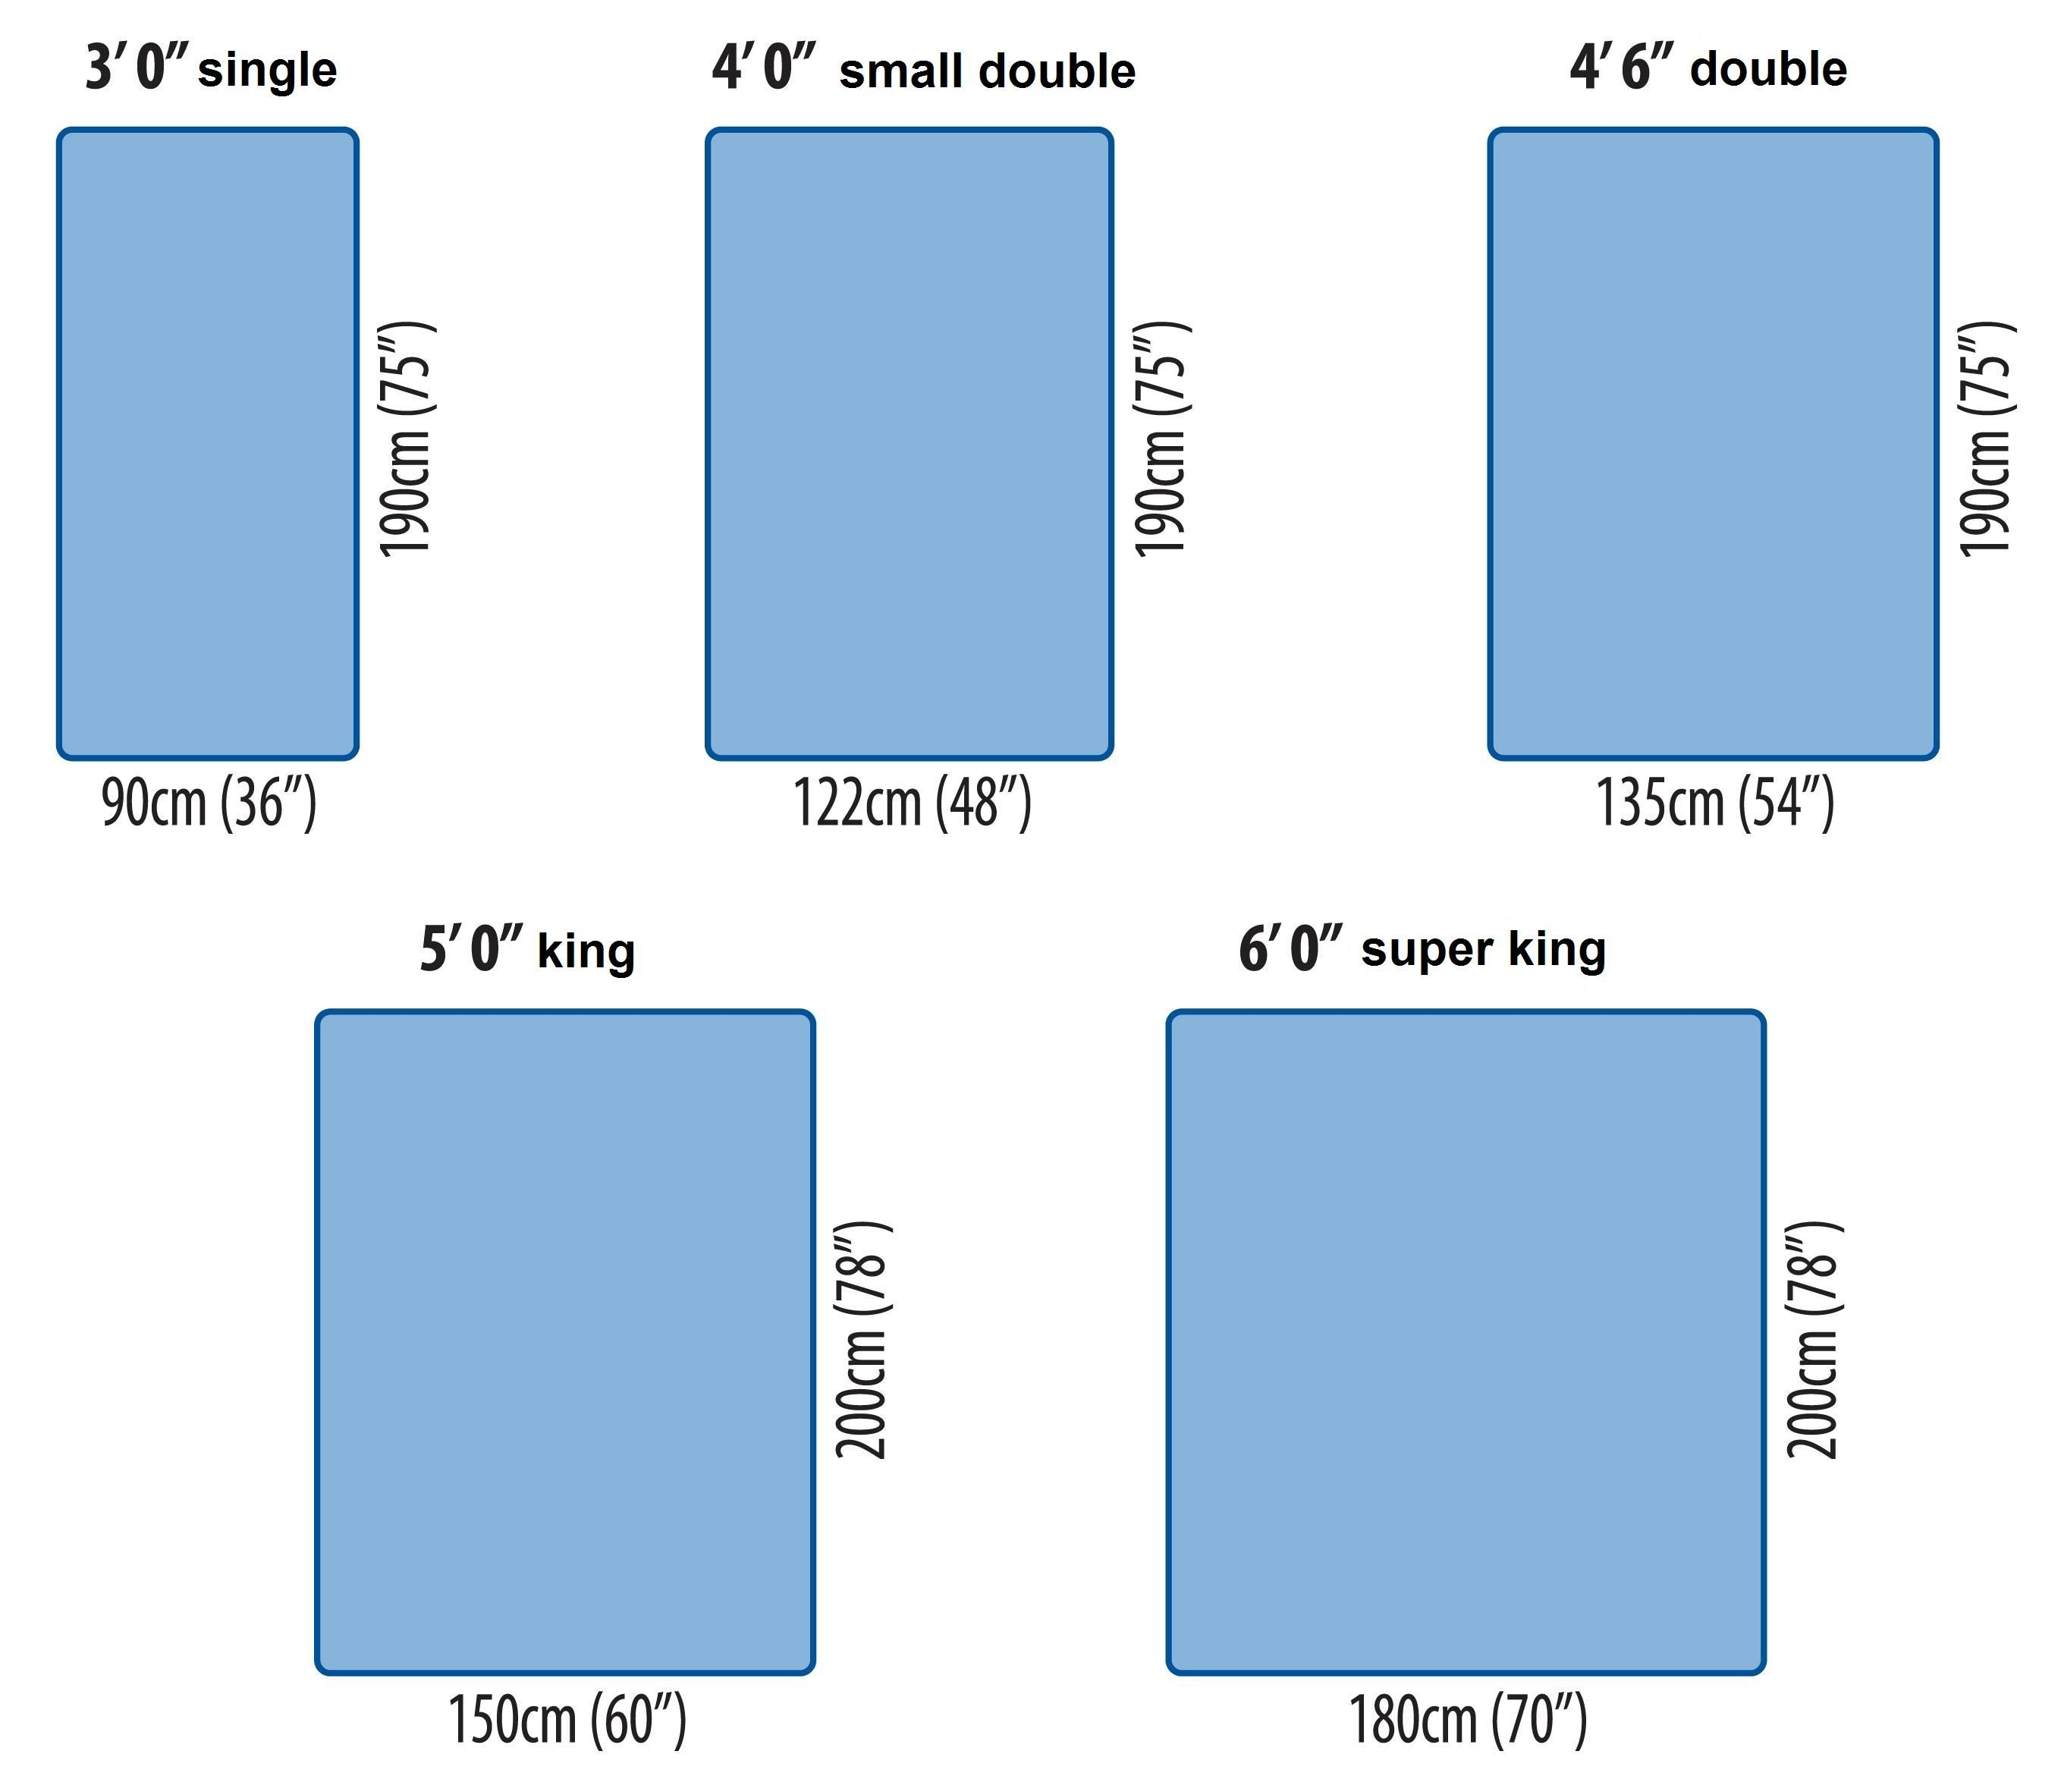 Dimensions For A King Size Bed Bed Sizes Are Confusing Interior Design Major King Size Bed